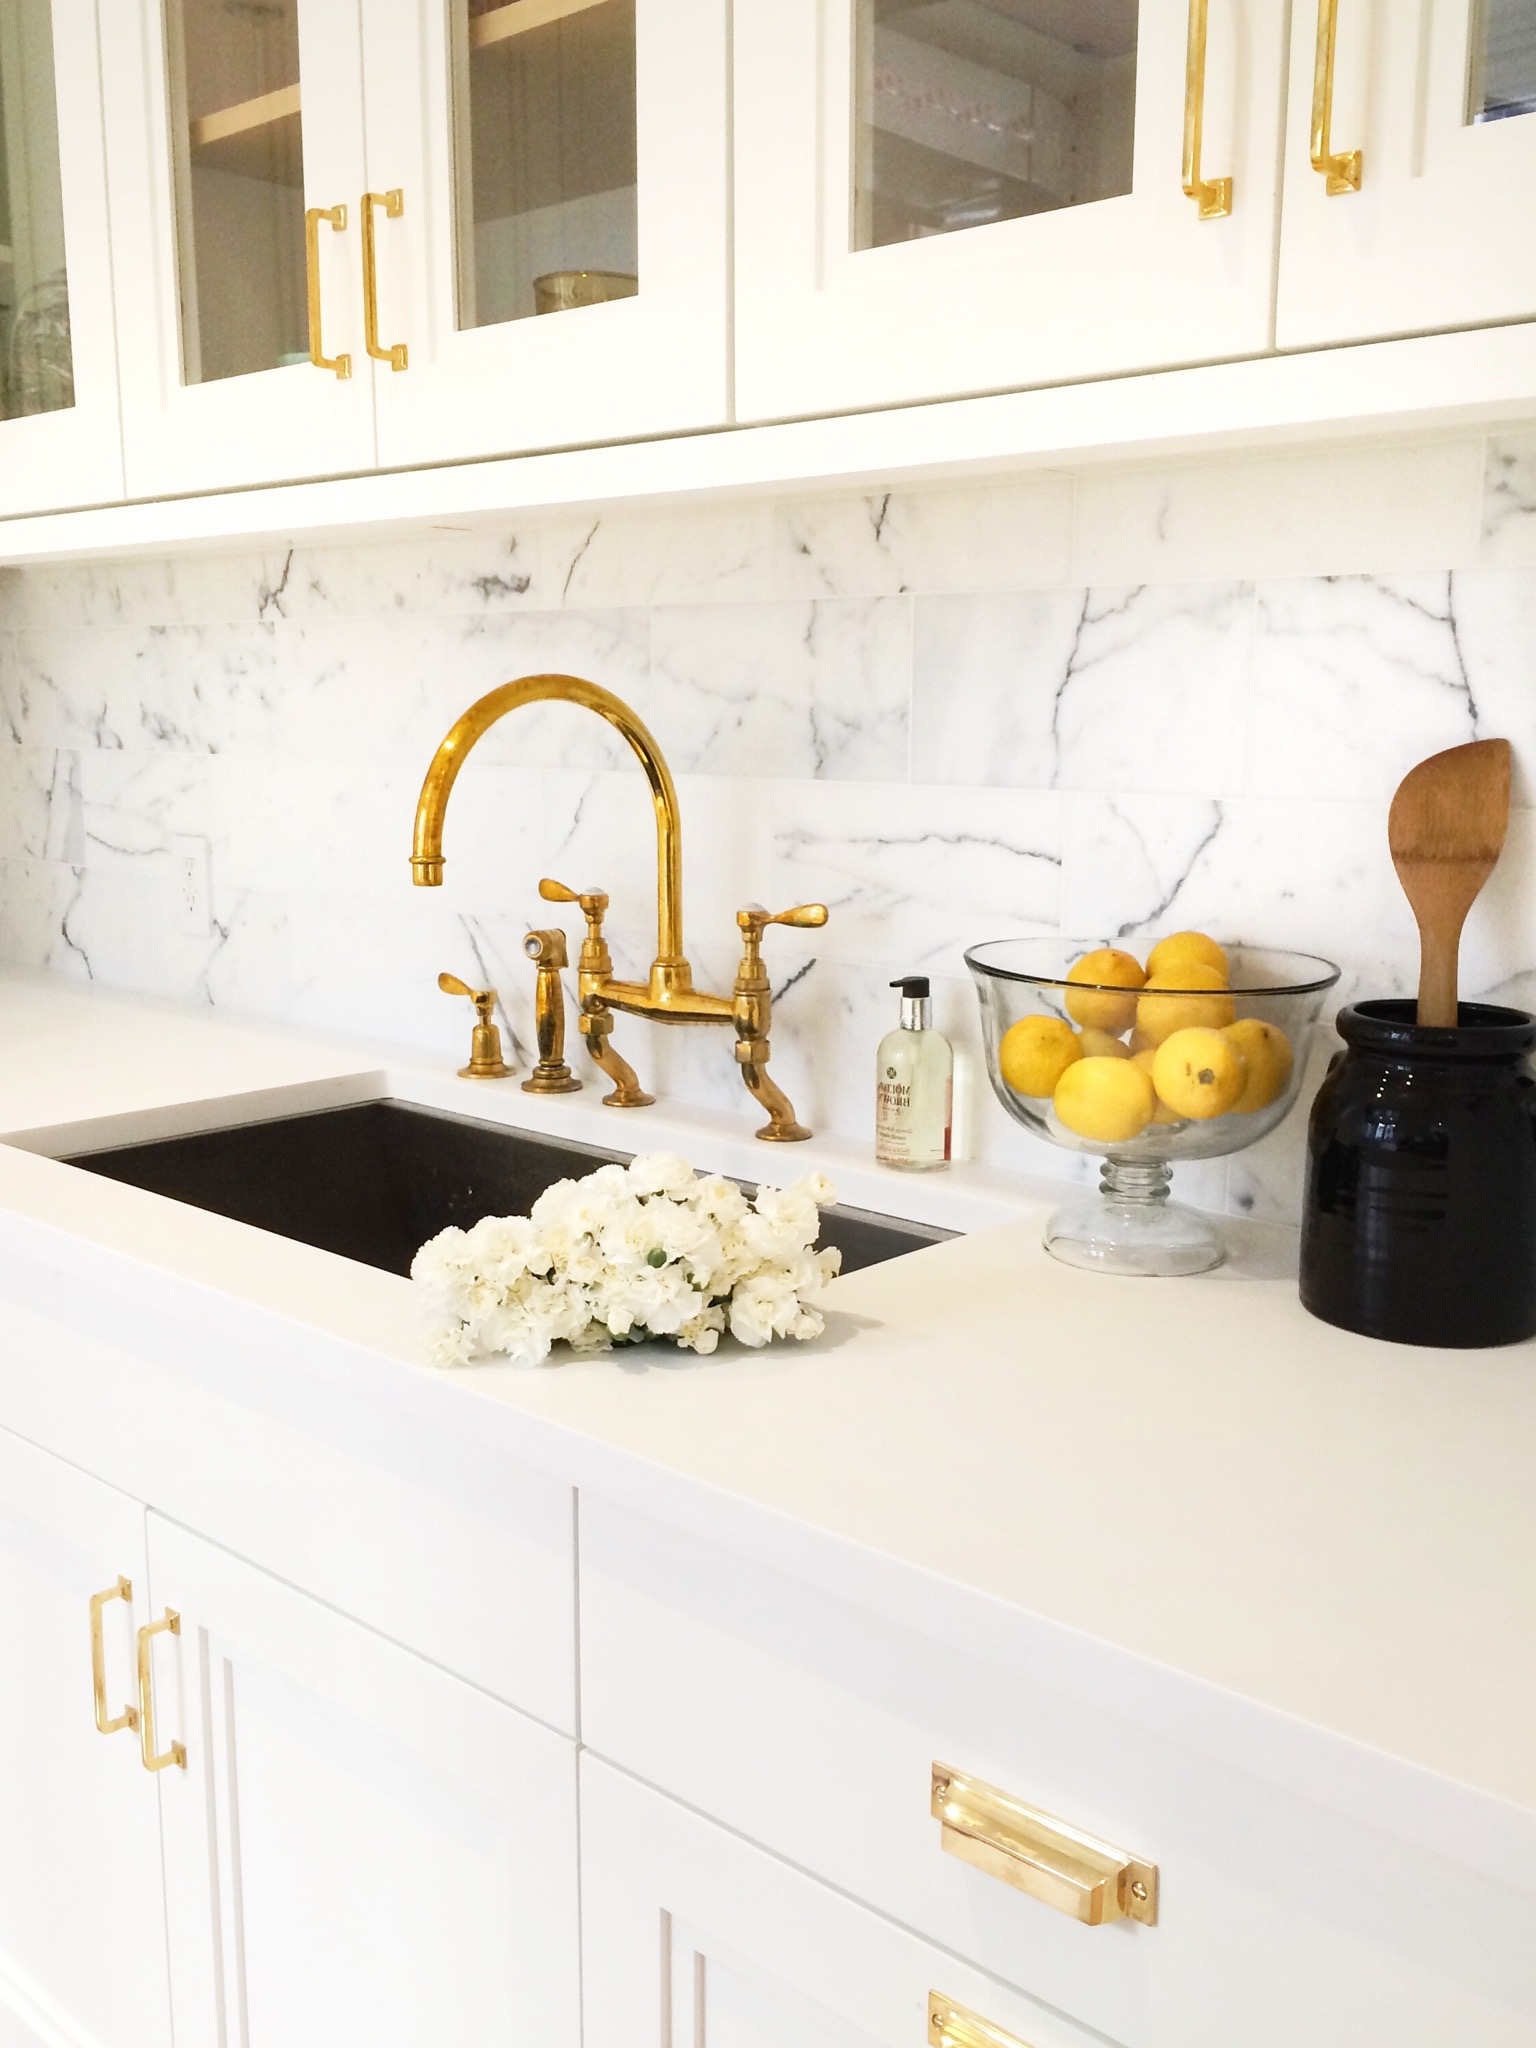 White Marble Backsplash For Kitchen Sink With Gold Faucet (Image 32 of 32)